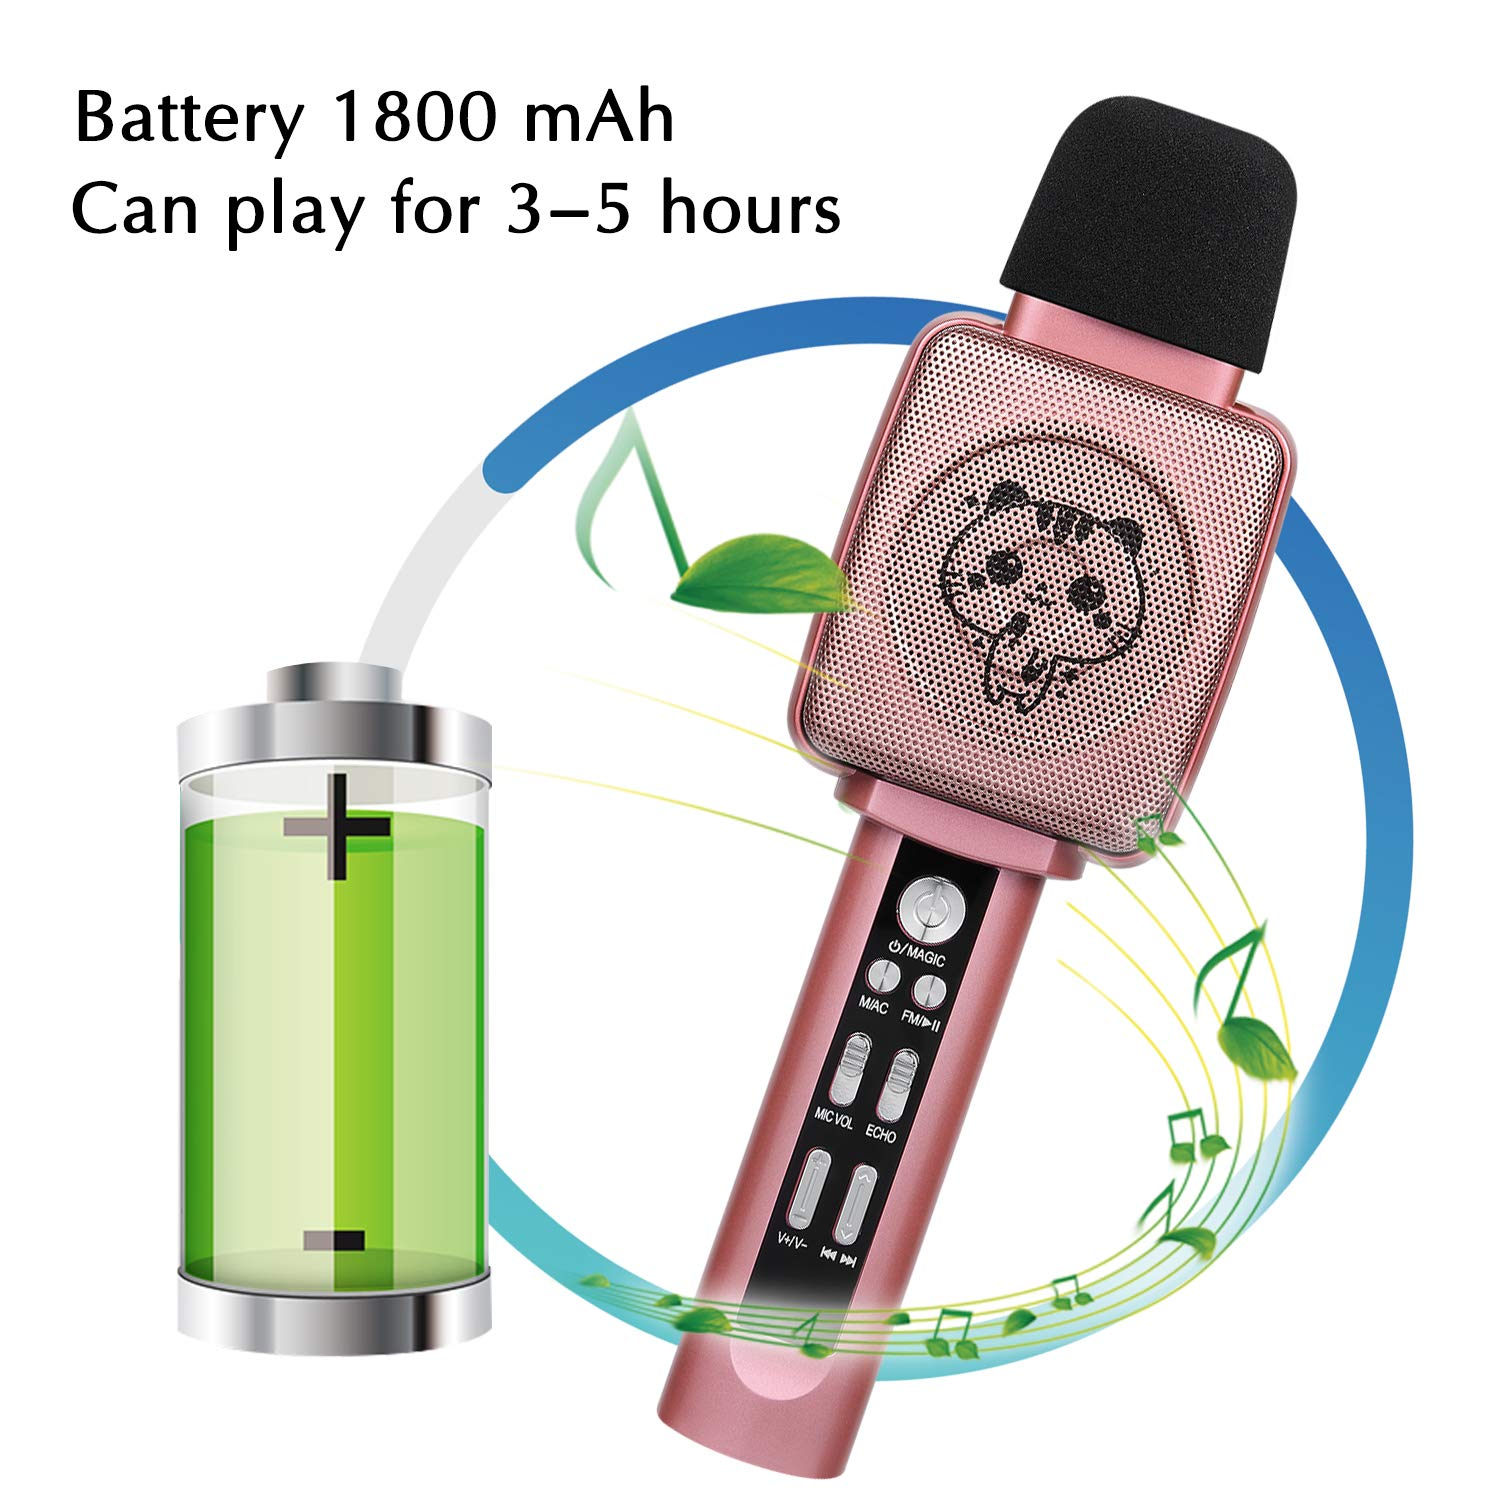 HOKLAN Kids Karaoke Microphone, Birthday Gifts for 3 4 5 6 7 8 9 Years Old Kids Girls, Birthday Presents & Toys for Children, Handheld Bluetooth Karaoke Machine with Voice Changer & Built-in Speaker by HOKLAN (Image #5)